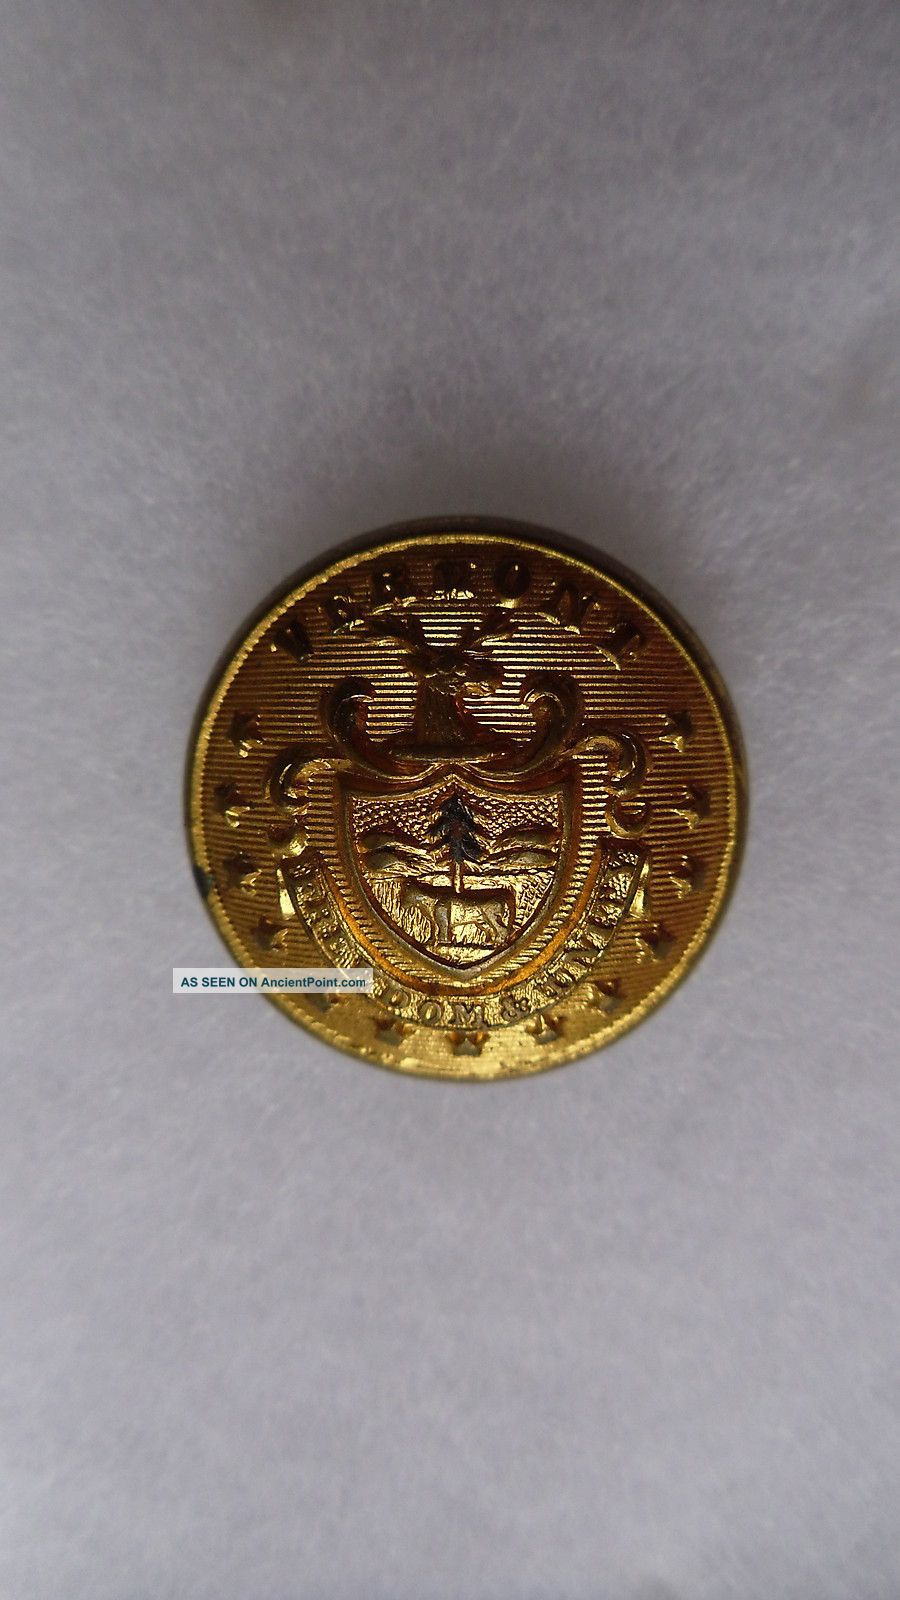 Antique Vermont State Seal Coat Button 23 Mm Buttons photo